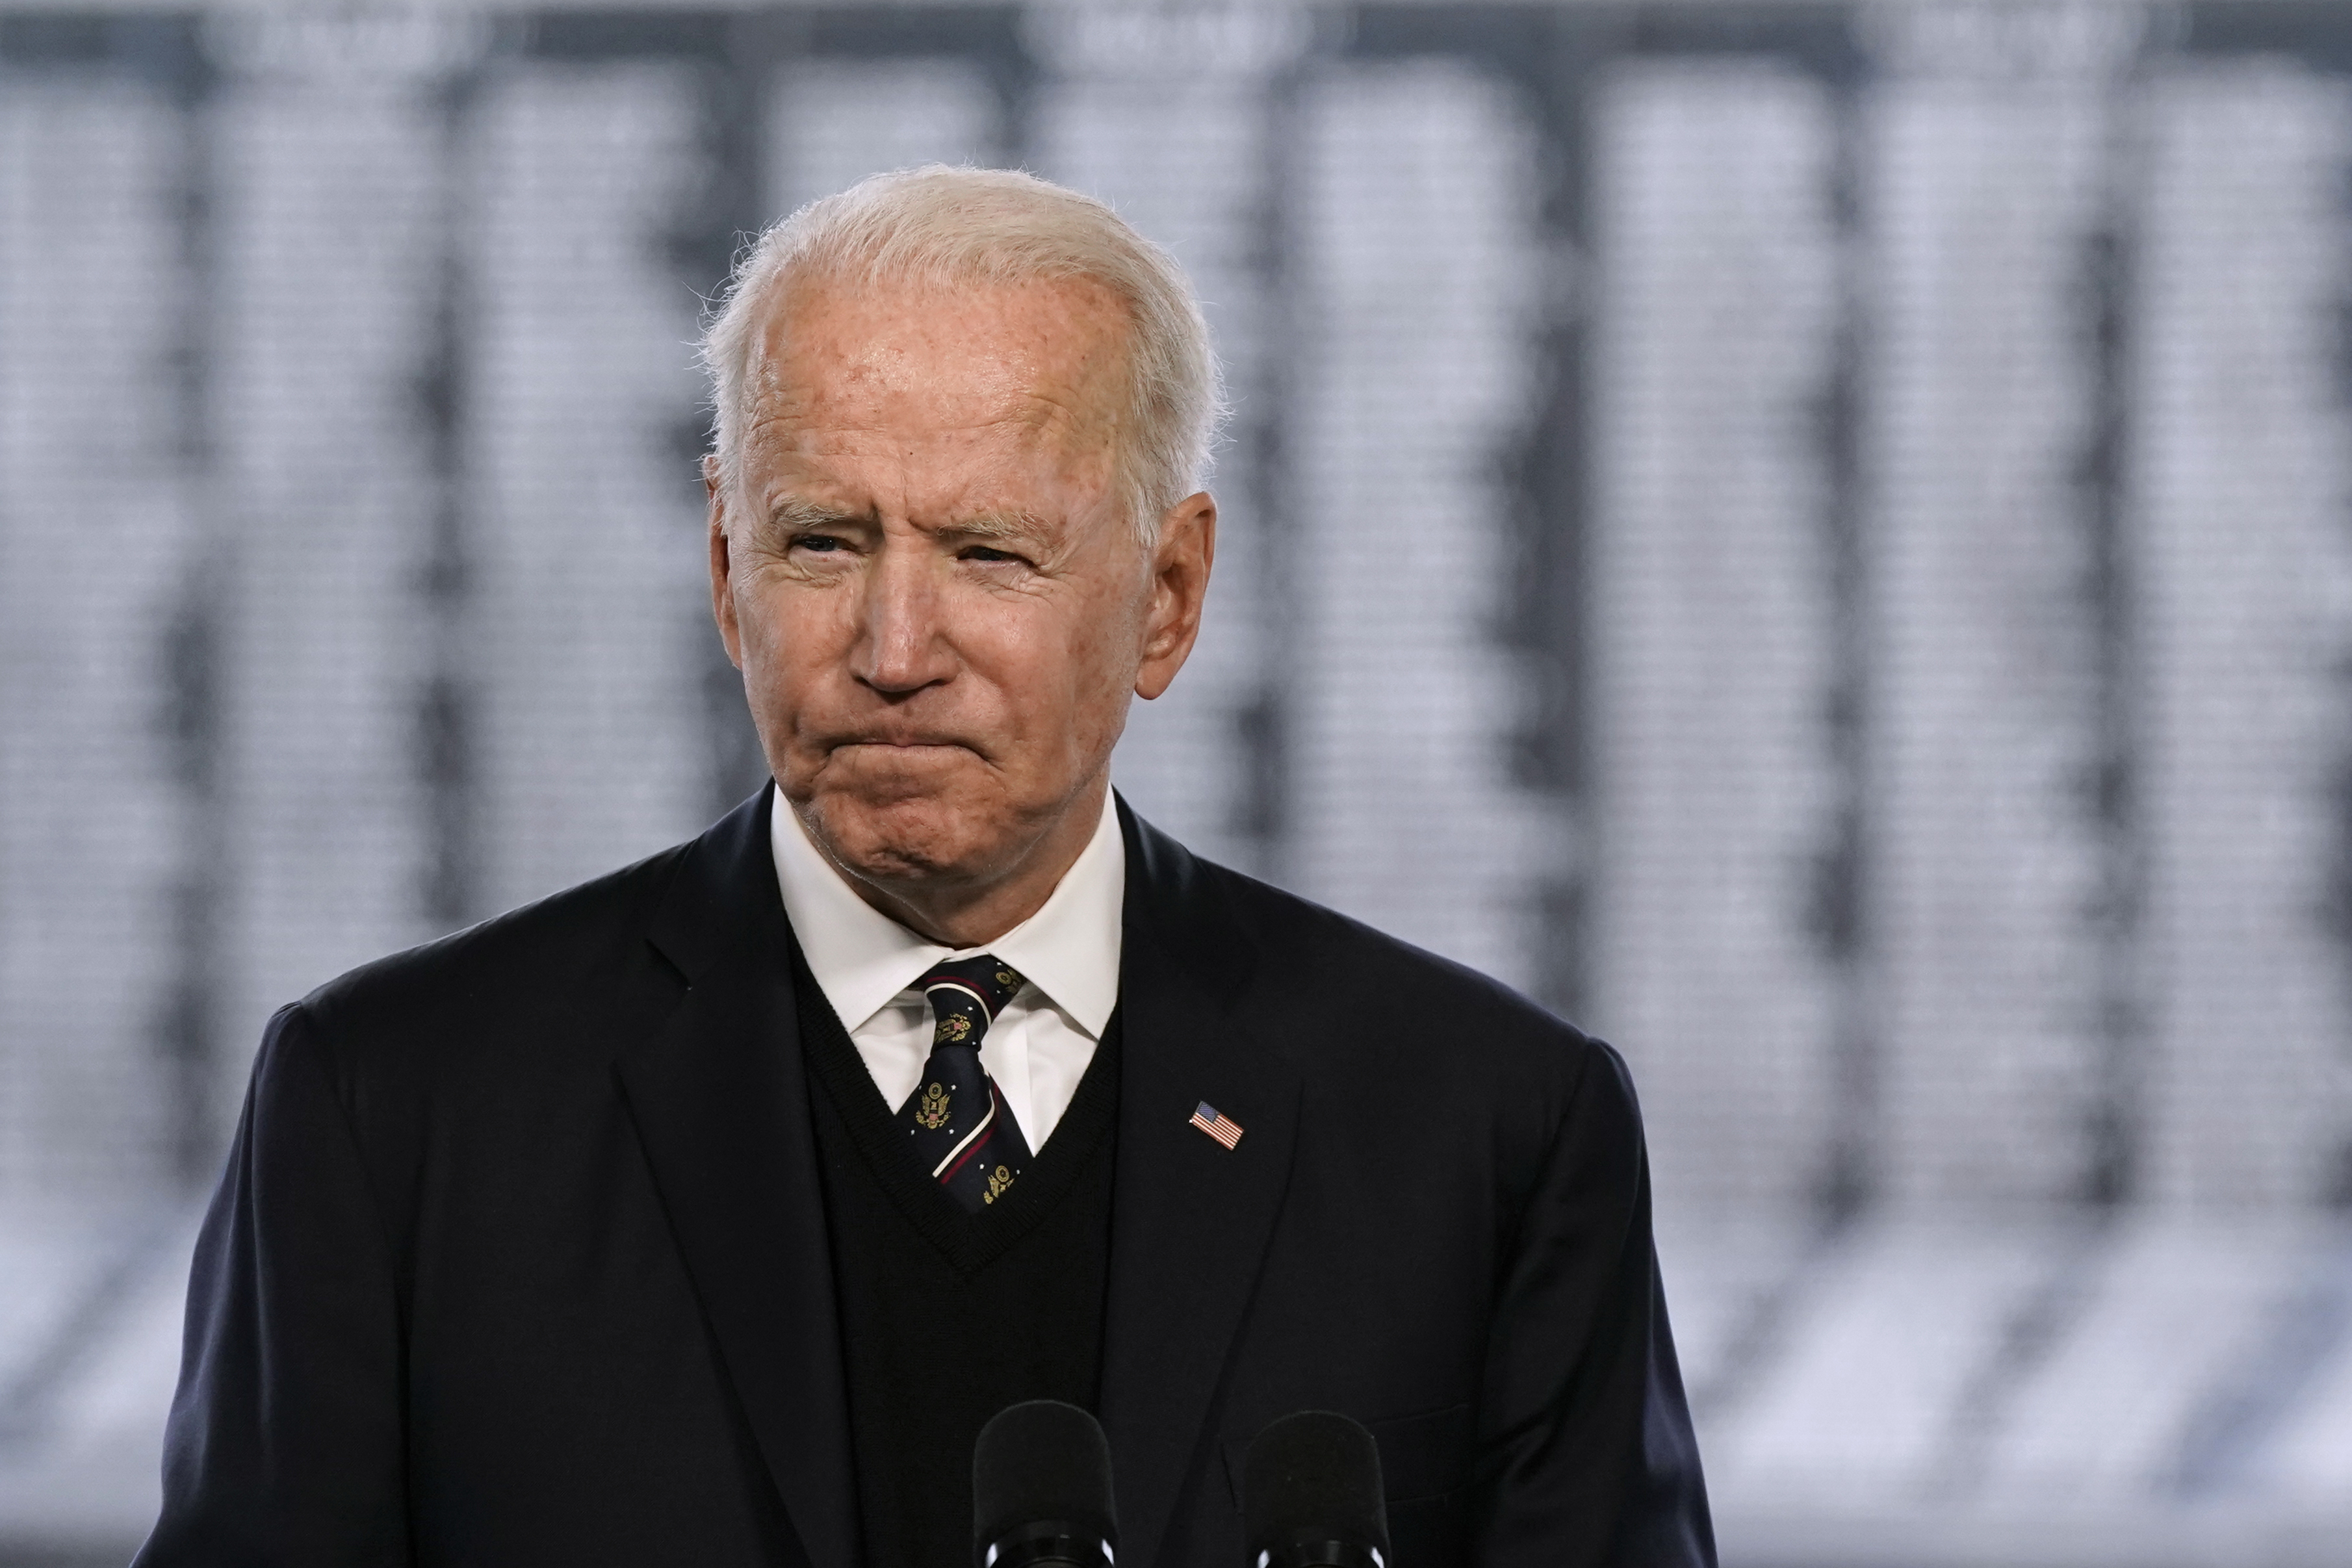 Biden revoked the permit earlier this year. (PA Images)